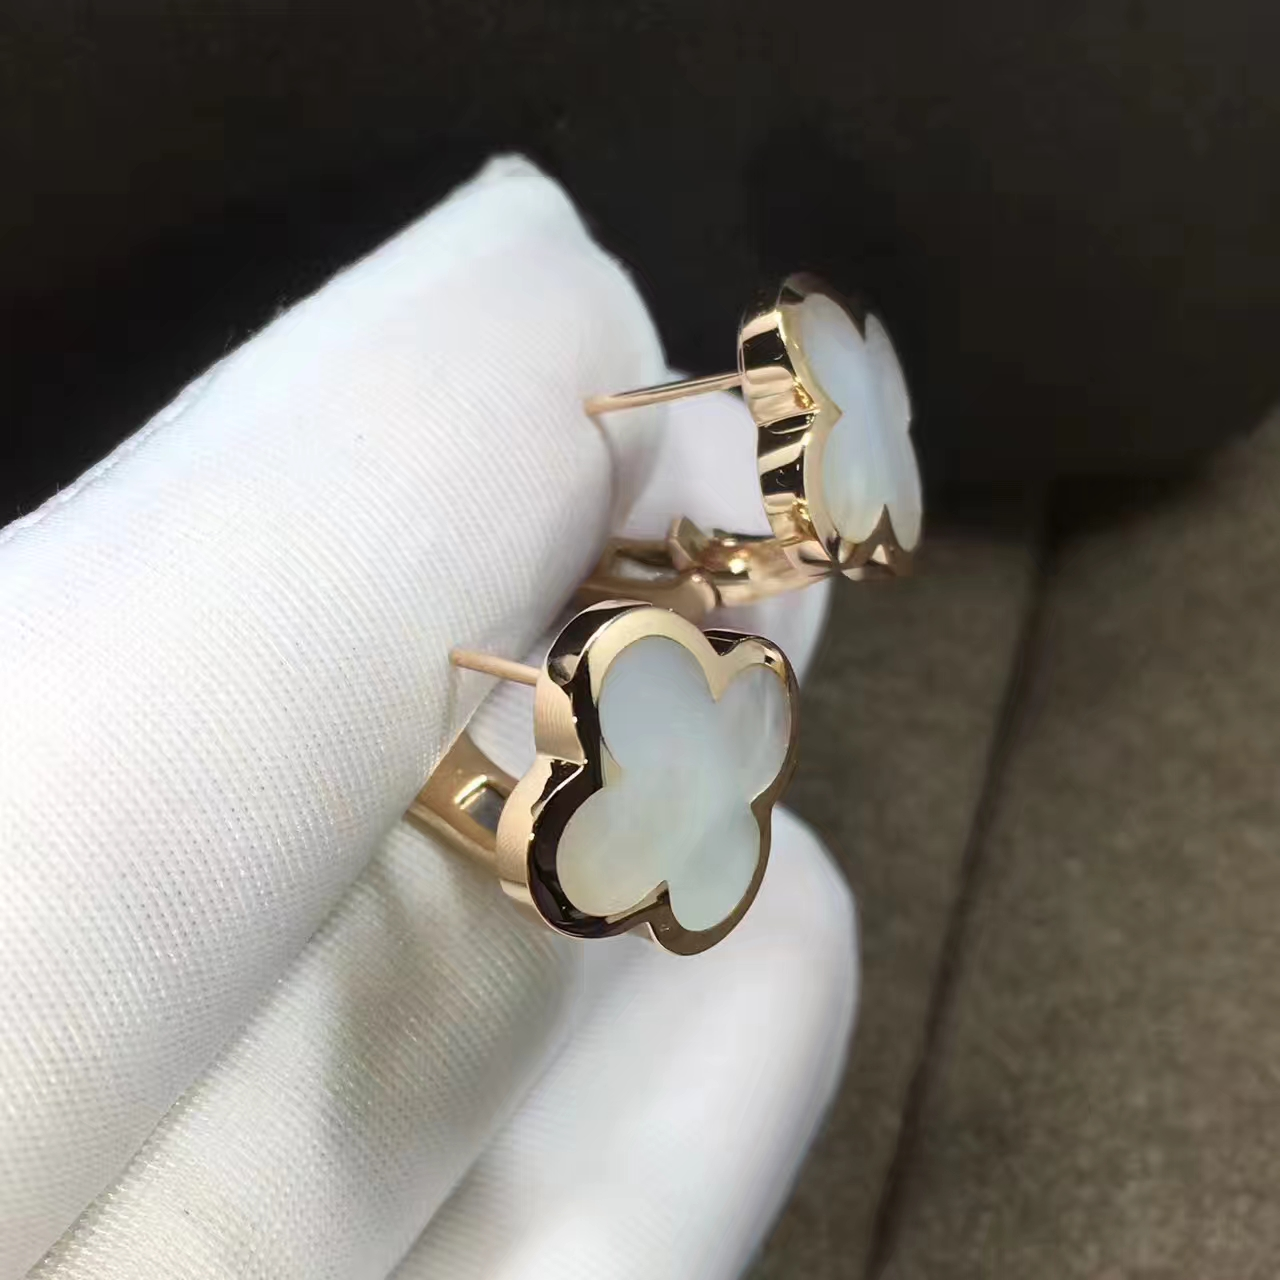 Van Cleef & Arpels Pure Alhambra Earrings in 18k Yellow Gold with Mother of Pearl VCARA38800